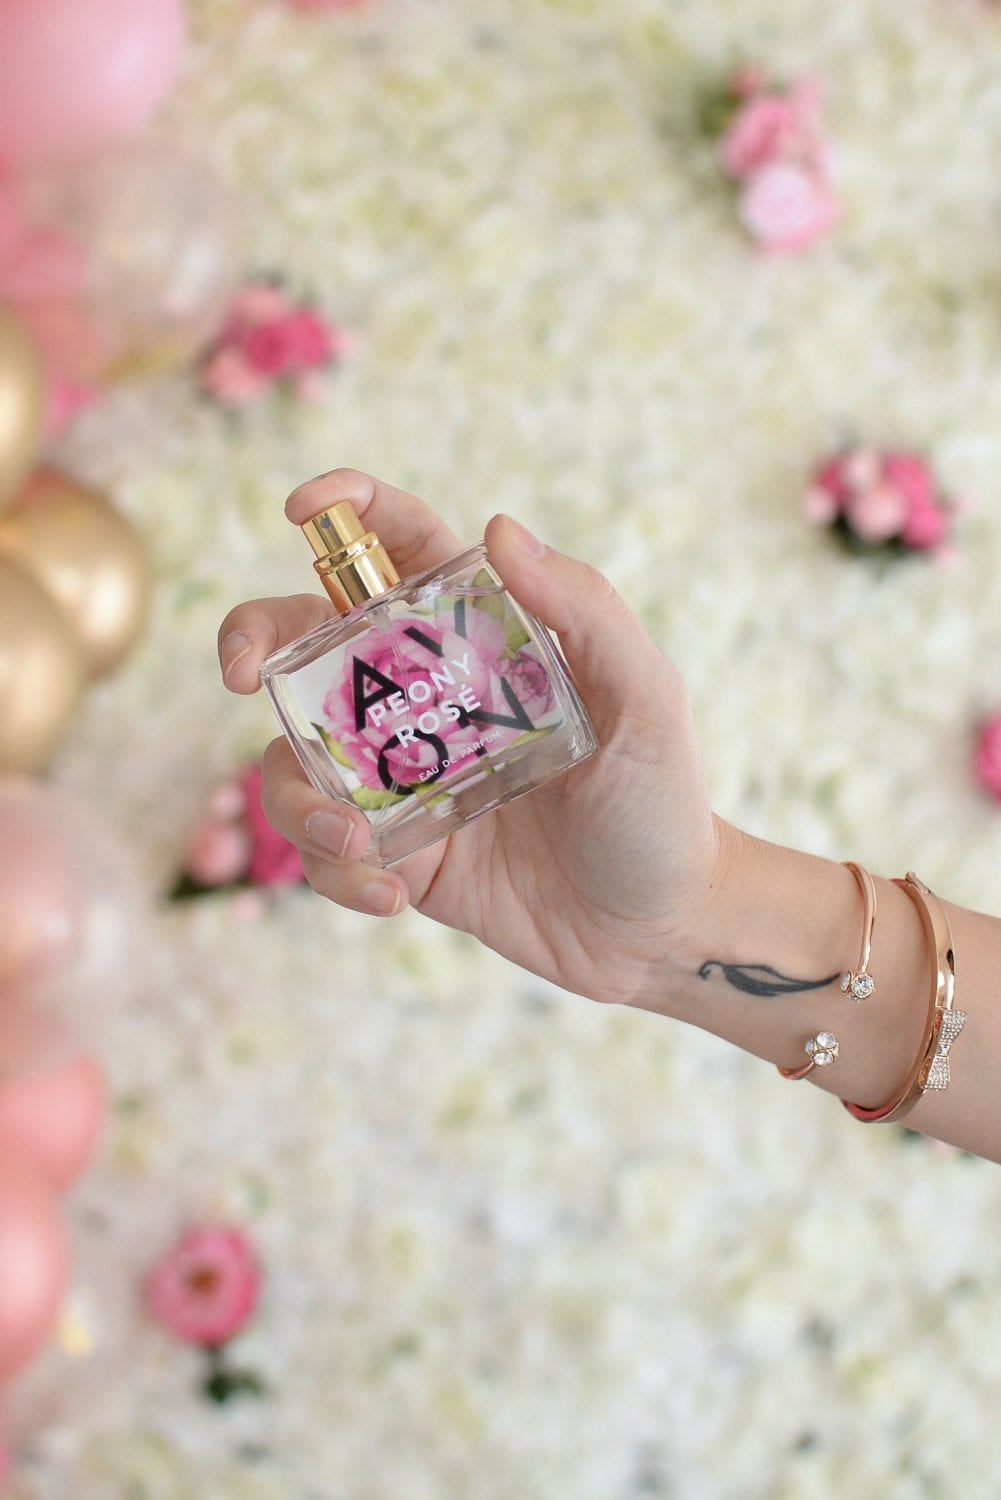 How To Find Your New Signature Scent